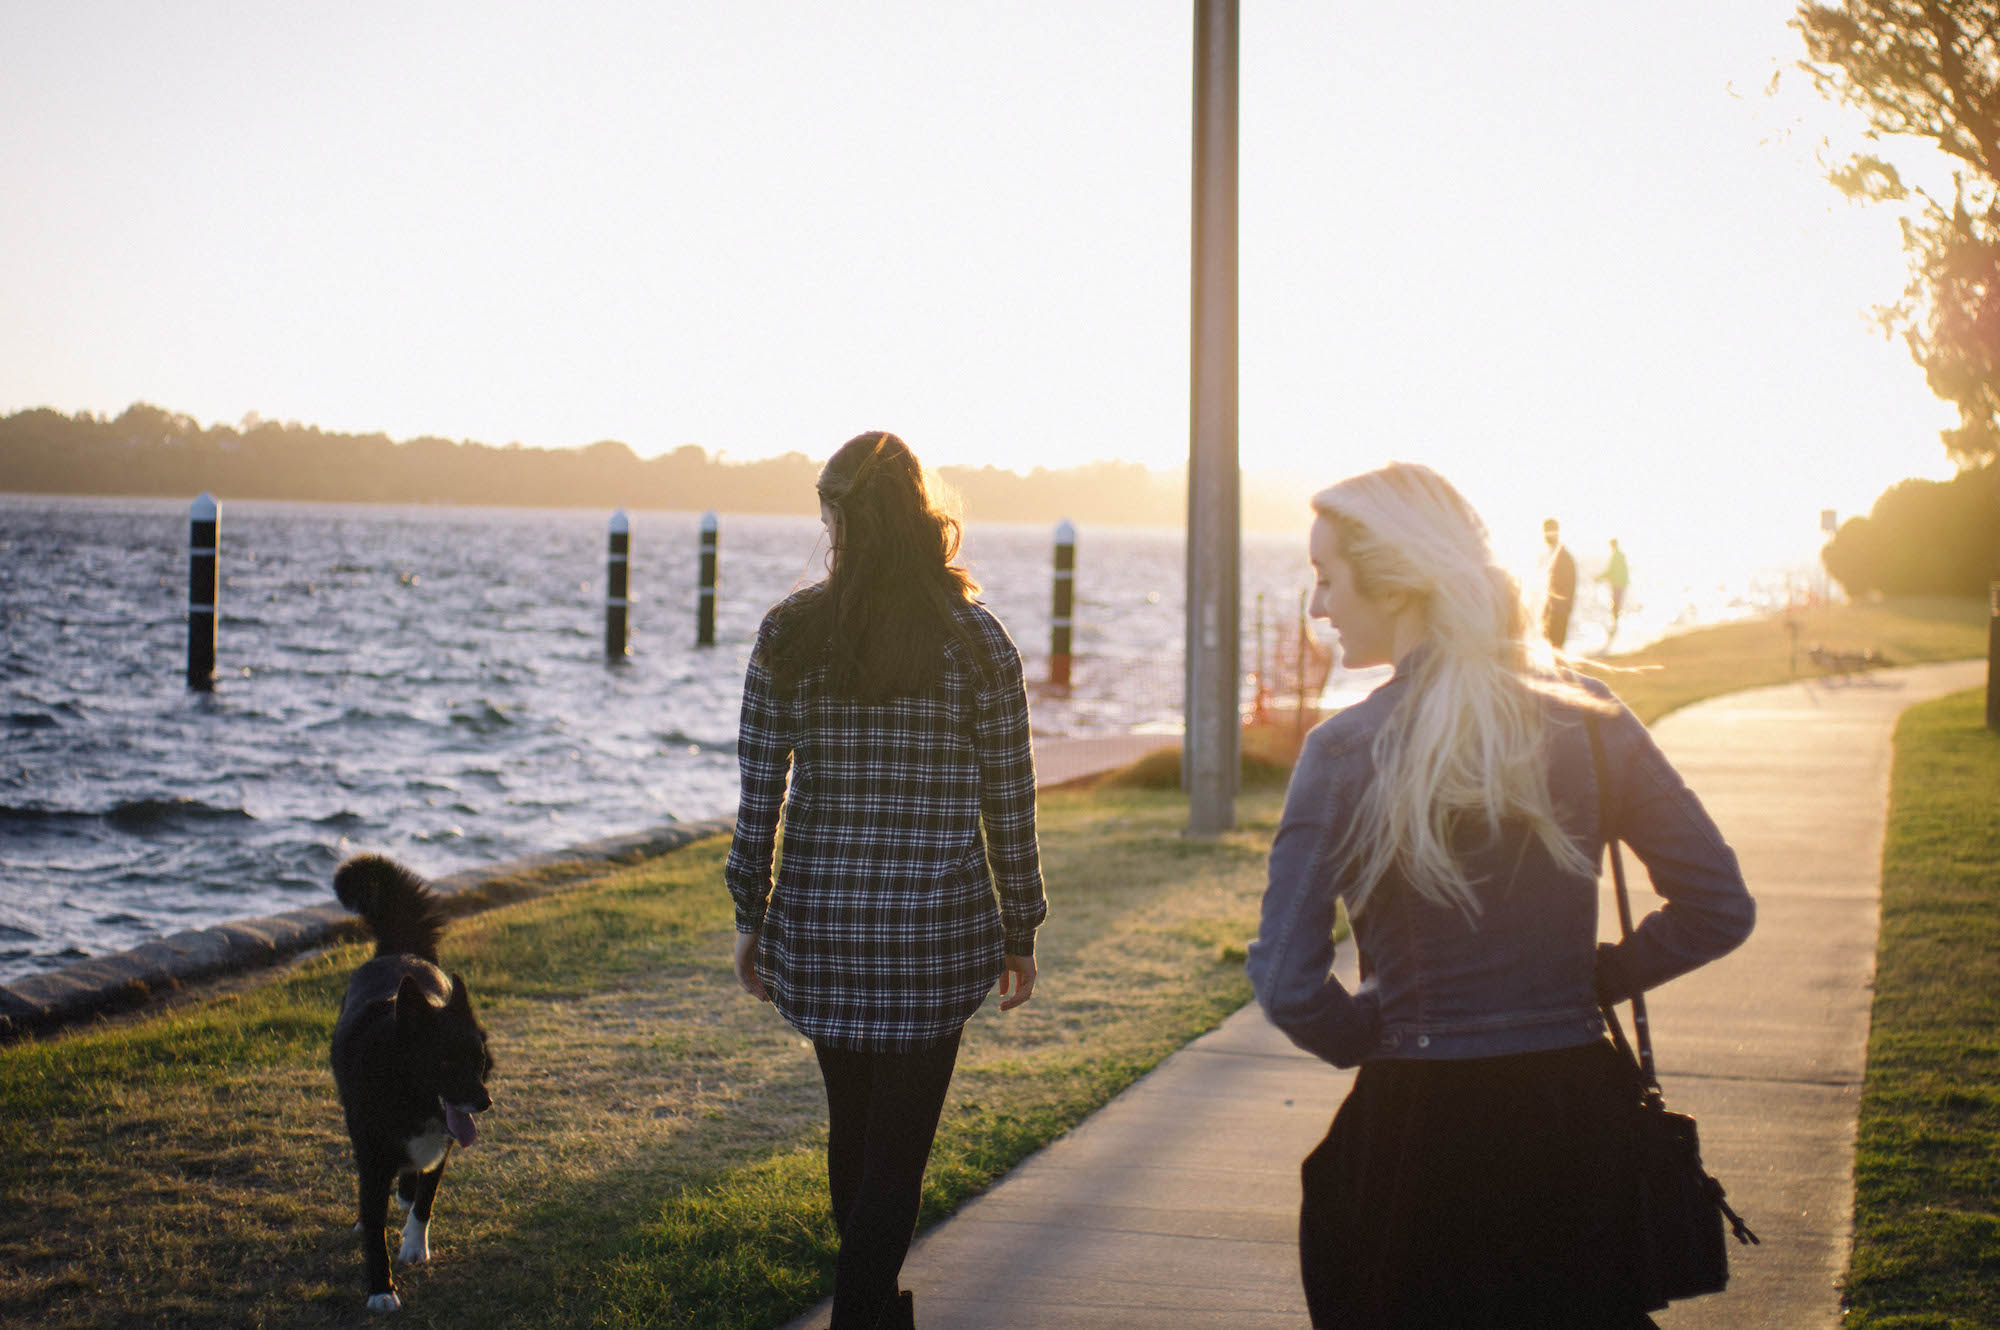 Riverside Family Portraits Perth Photography Sunset